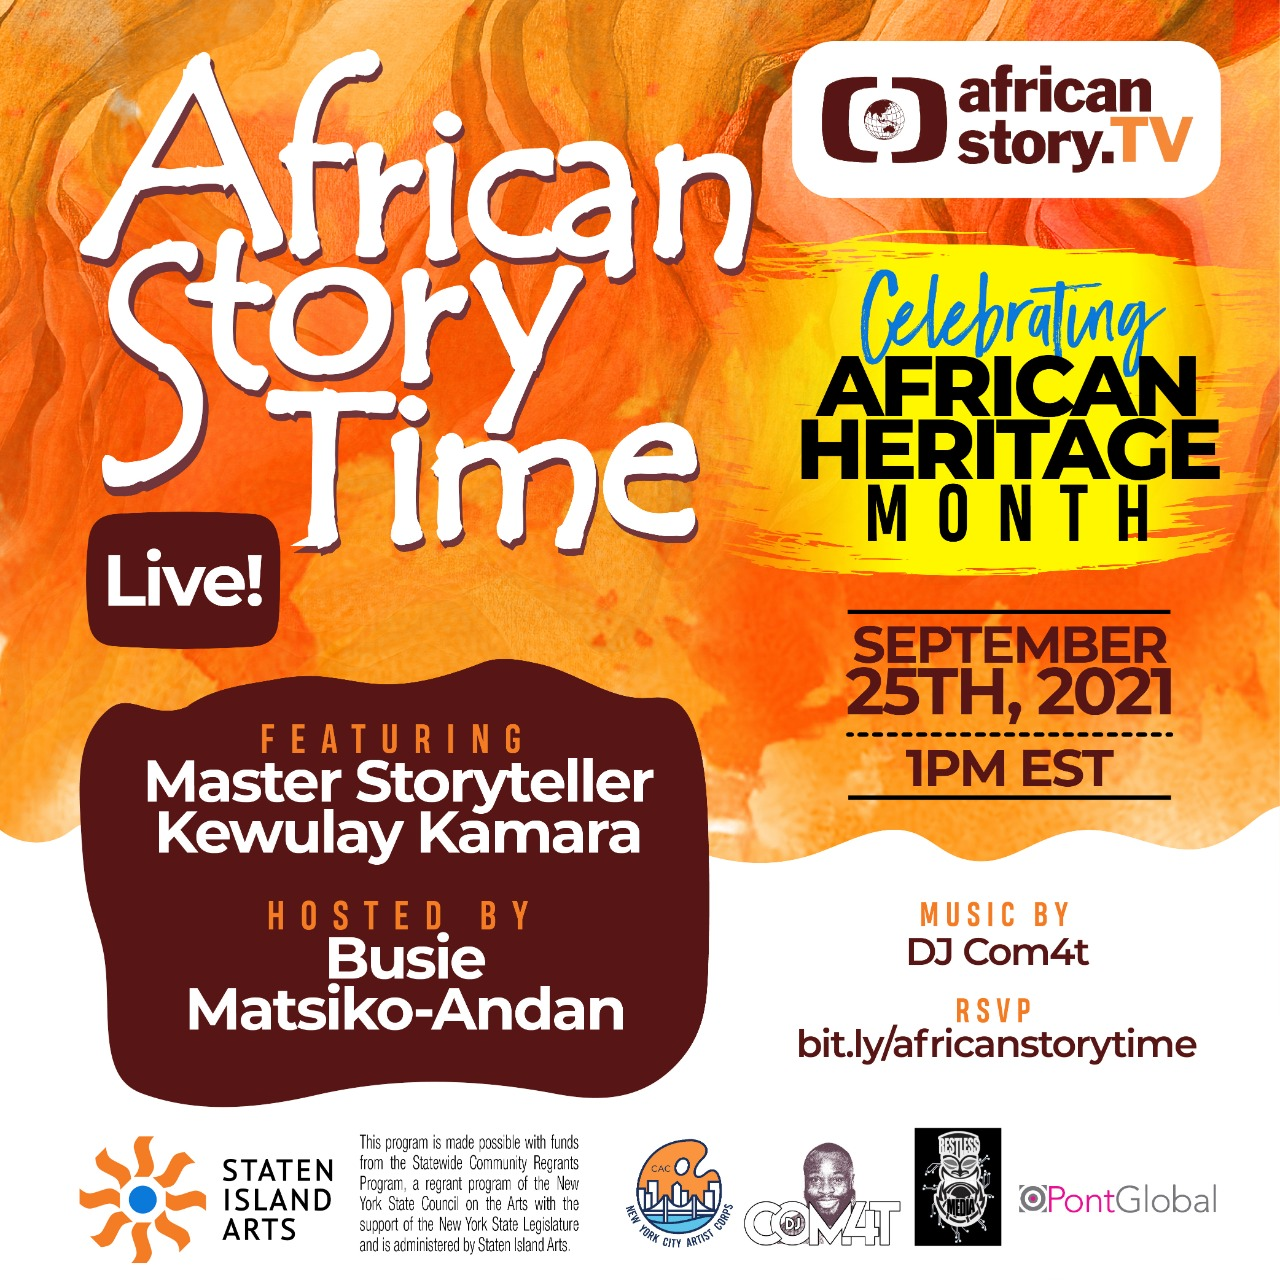 Africanstory.Tv Celebrates African Heritage Month With A Live Storytelling Broadcast